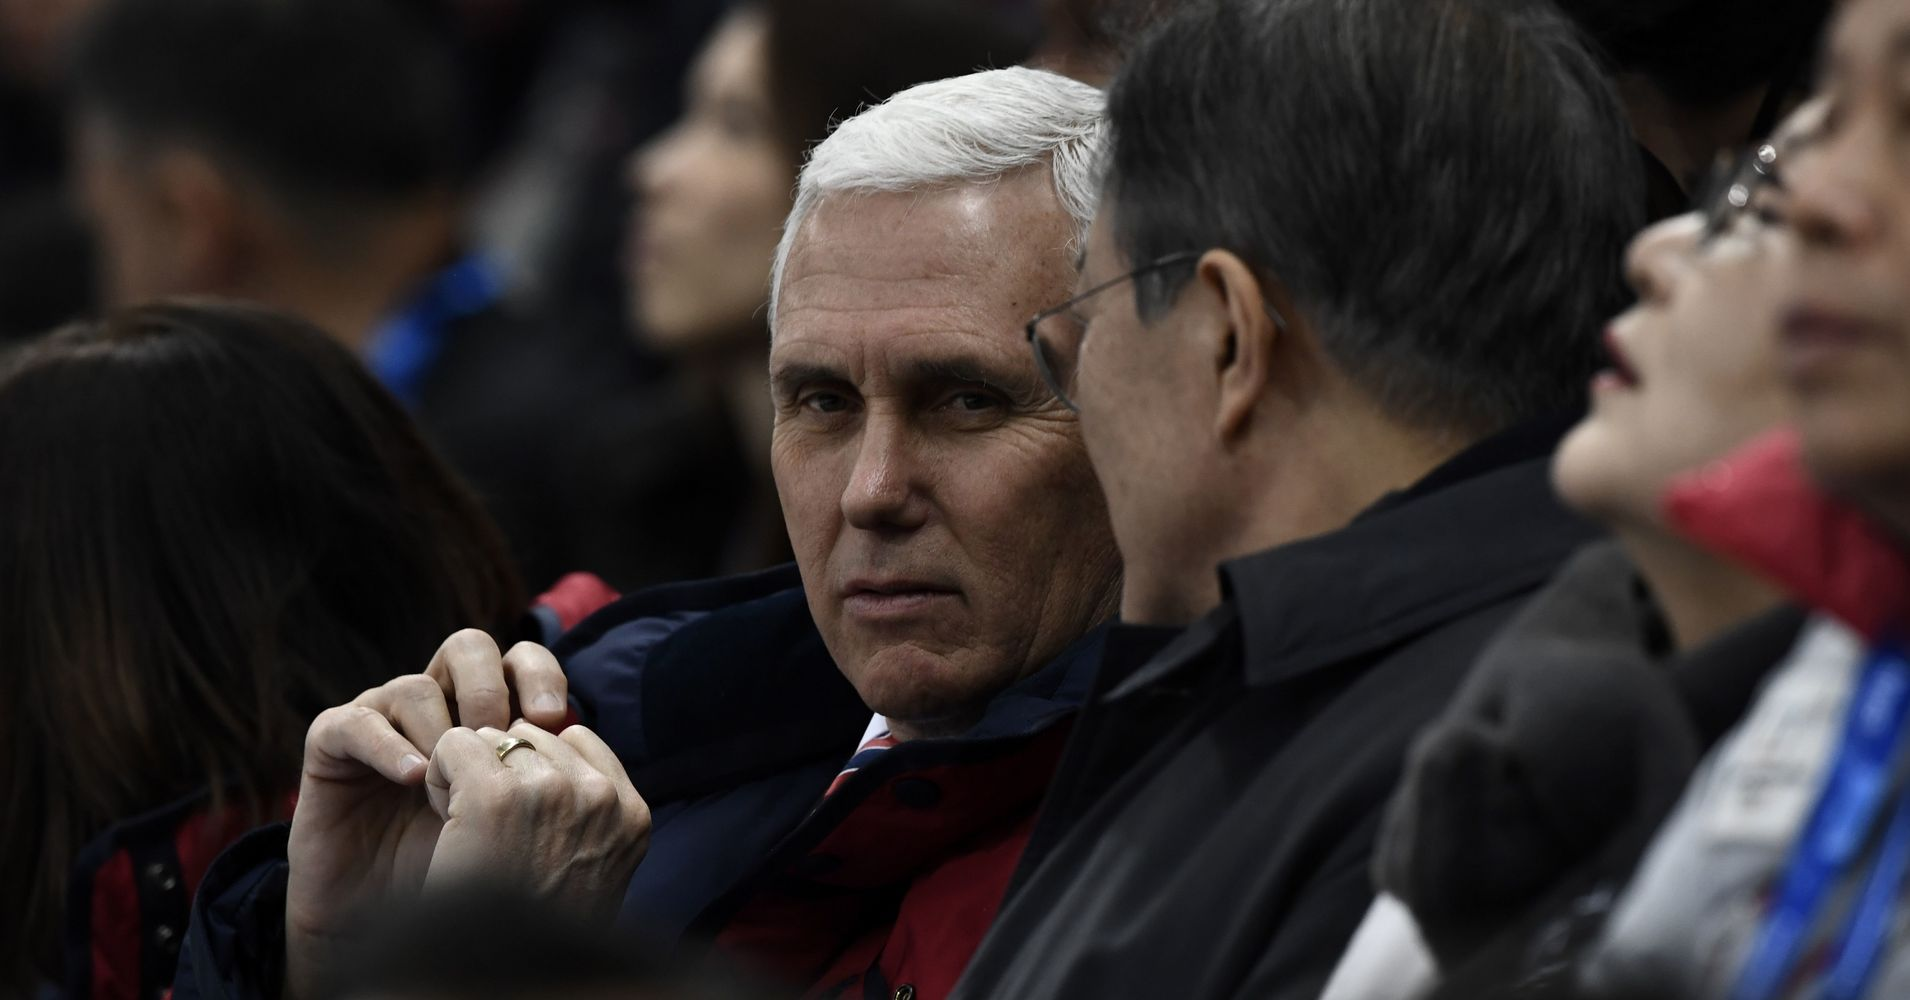 PENCE ON GAY MARRIAGE